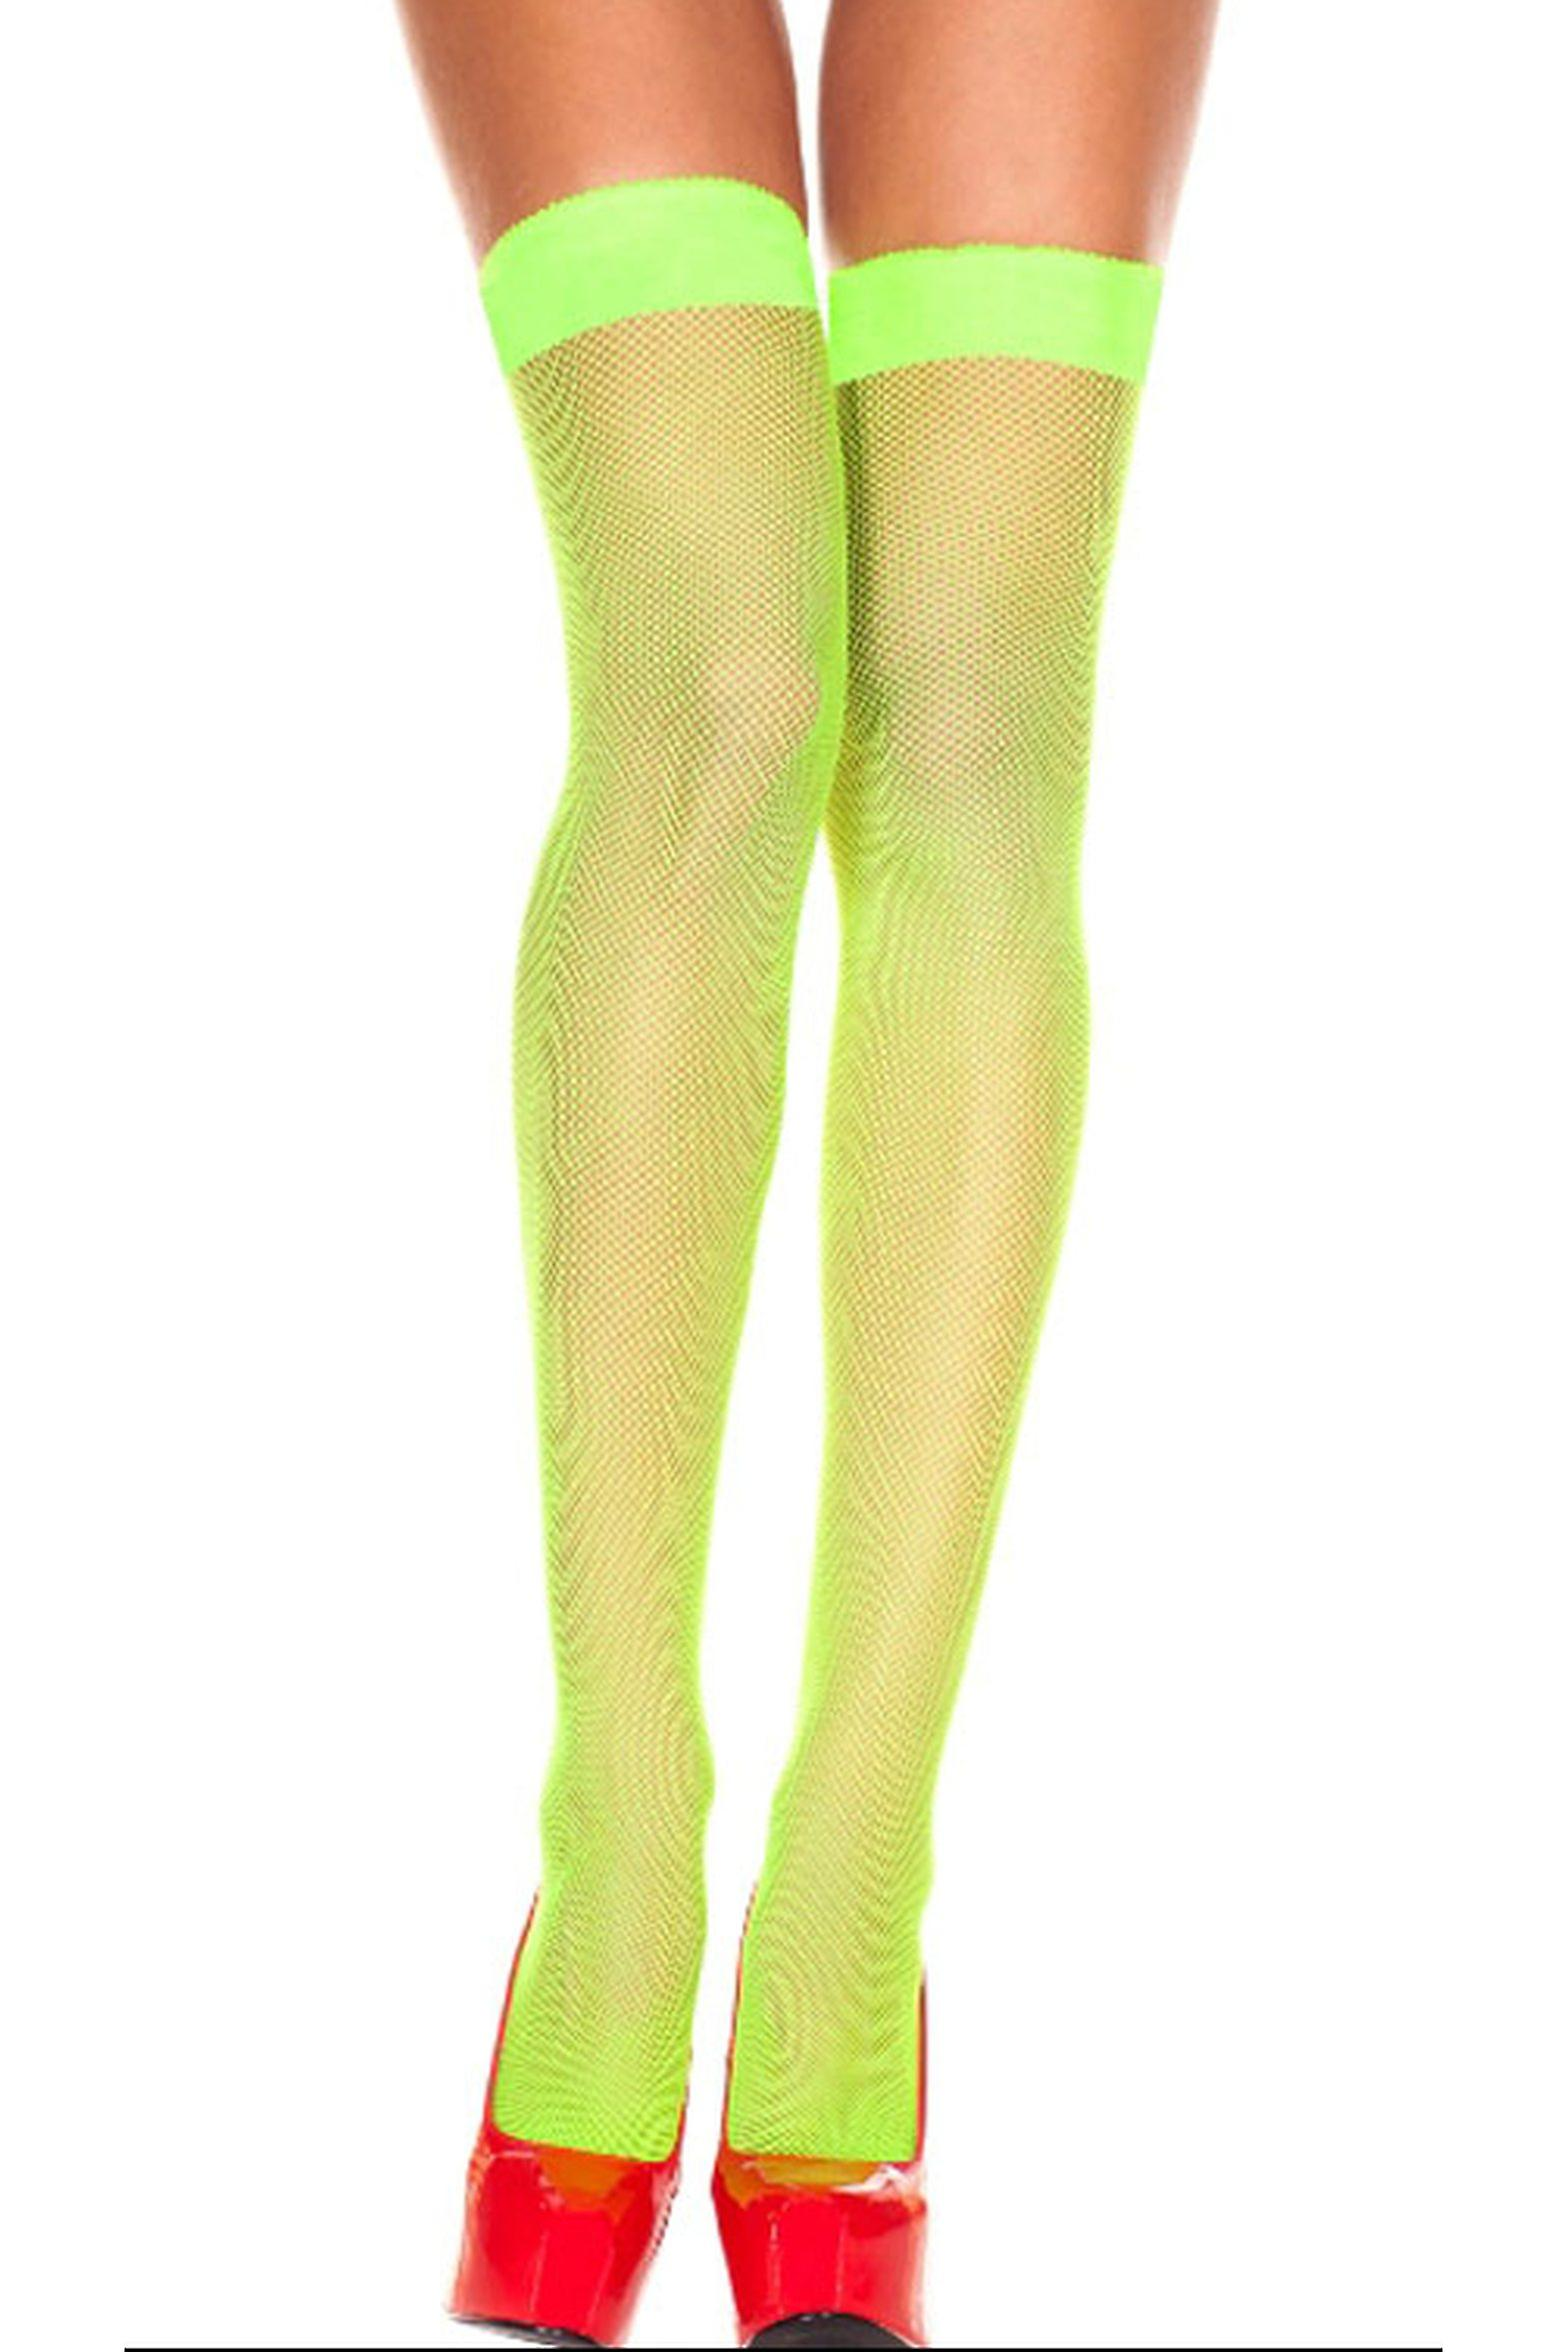 Stockings and leg accessories Women Fishnet tights green with lace detail